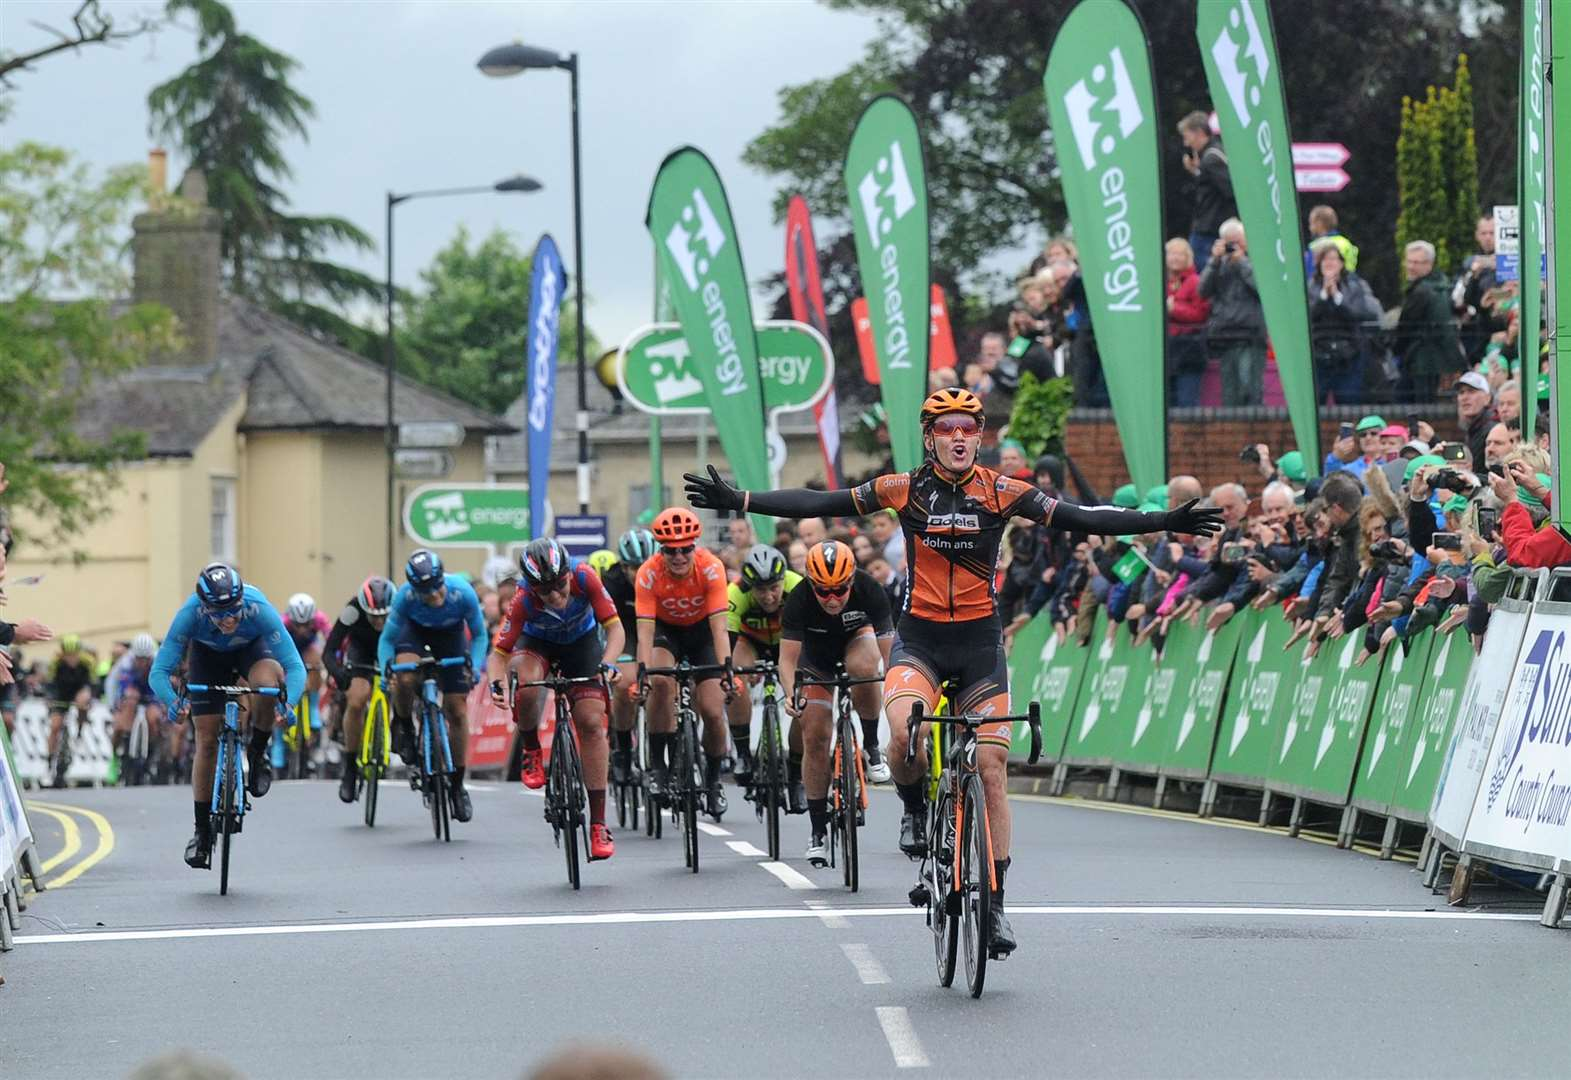 Haverhill to host start of final stage of The Women's Tour in 2020